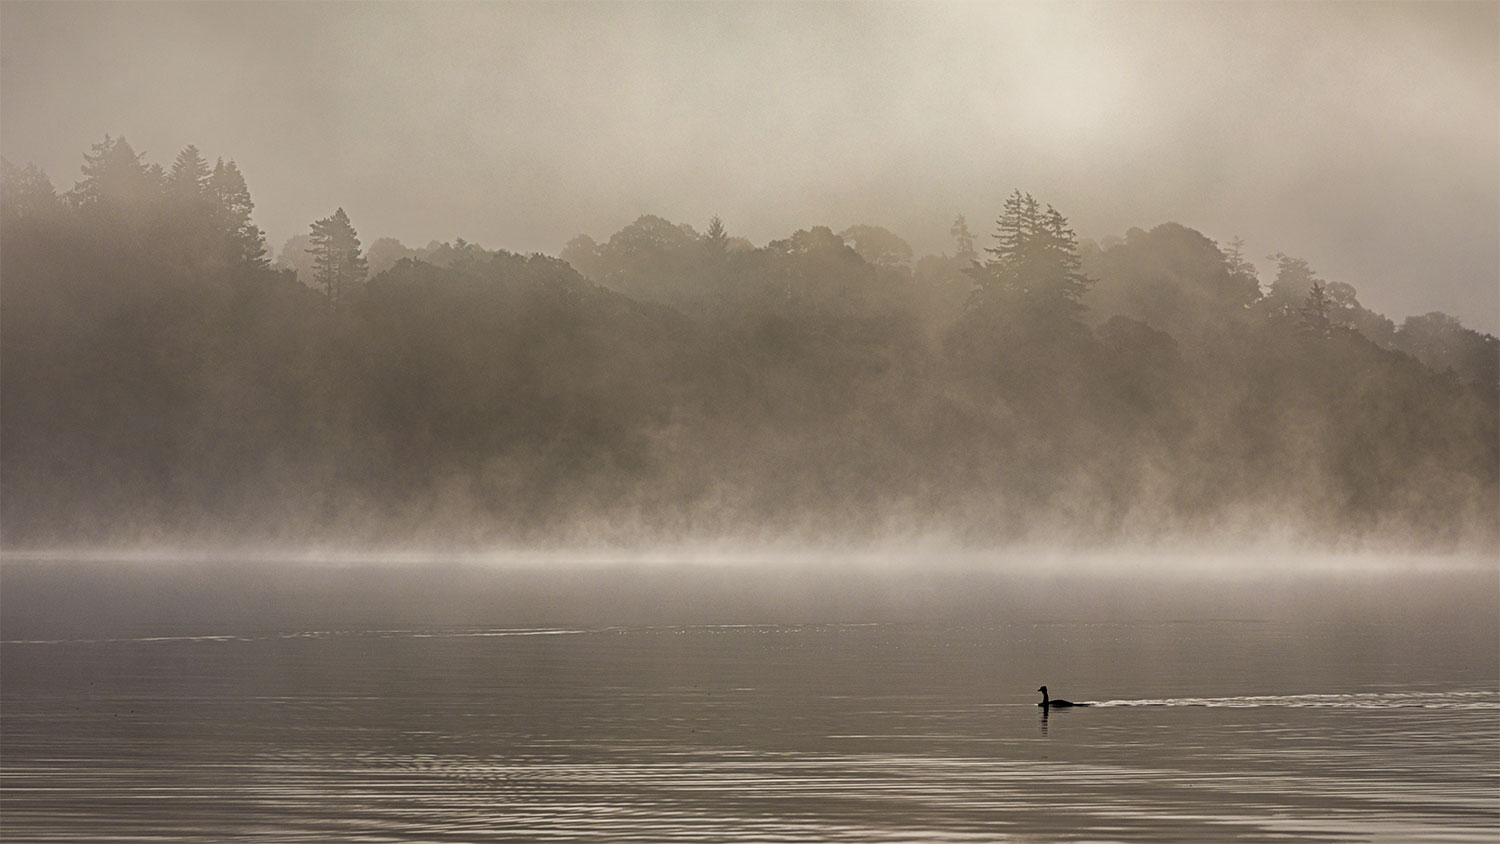 IMAGE: https://www.capnfishy.co.uk/wp-content/uploads/2020/09/Menteith24Sep20_2562-HDR.jpg